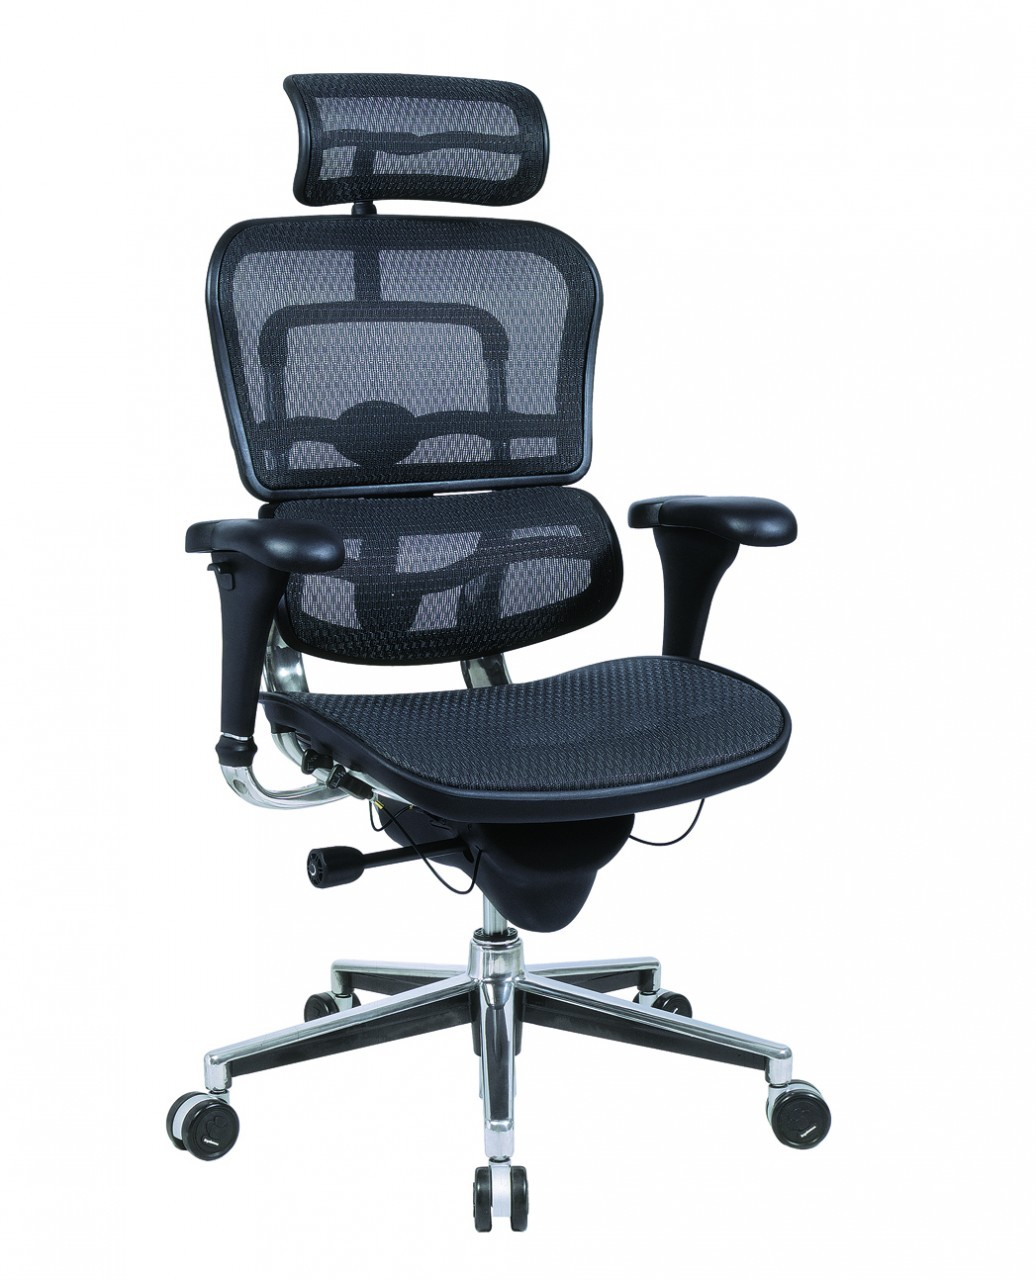 Best office chair for neck pain - Best Desk Chair For Back And Neck Pain